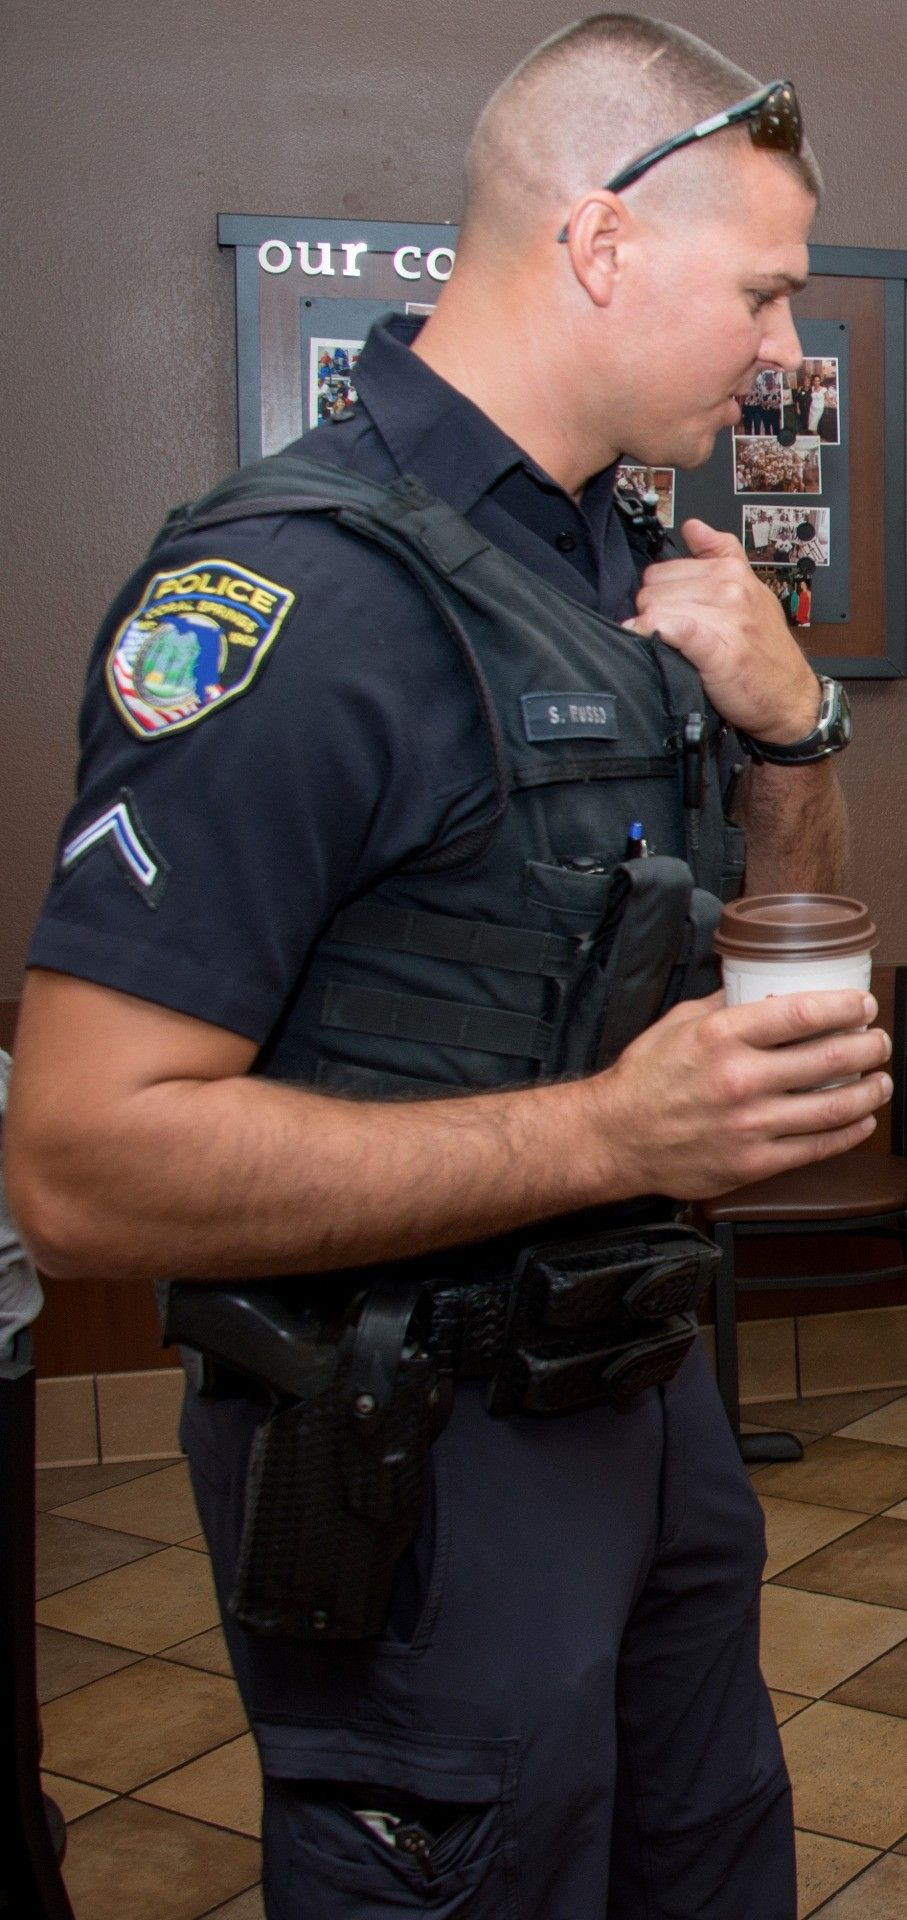 Pin By E Y On Uniformed Pinterest Men In Uniform Police And